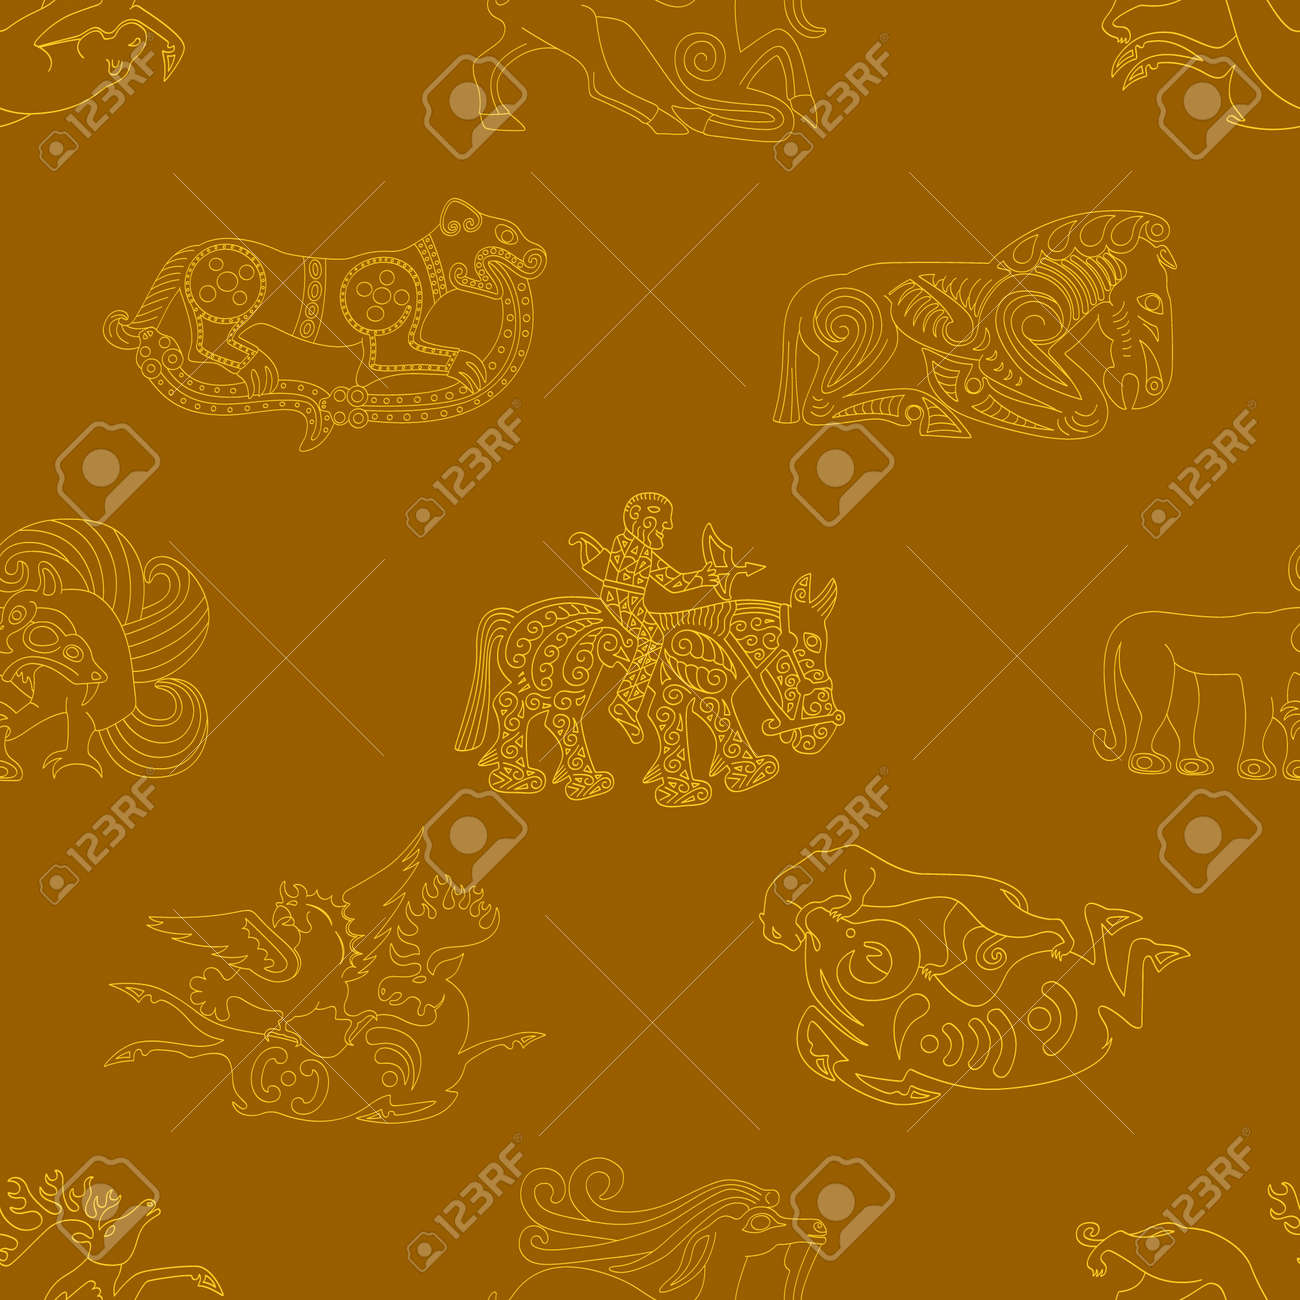 Seamless pattern with ancient Scythian art and animal motifs for your project - 166671017